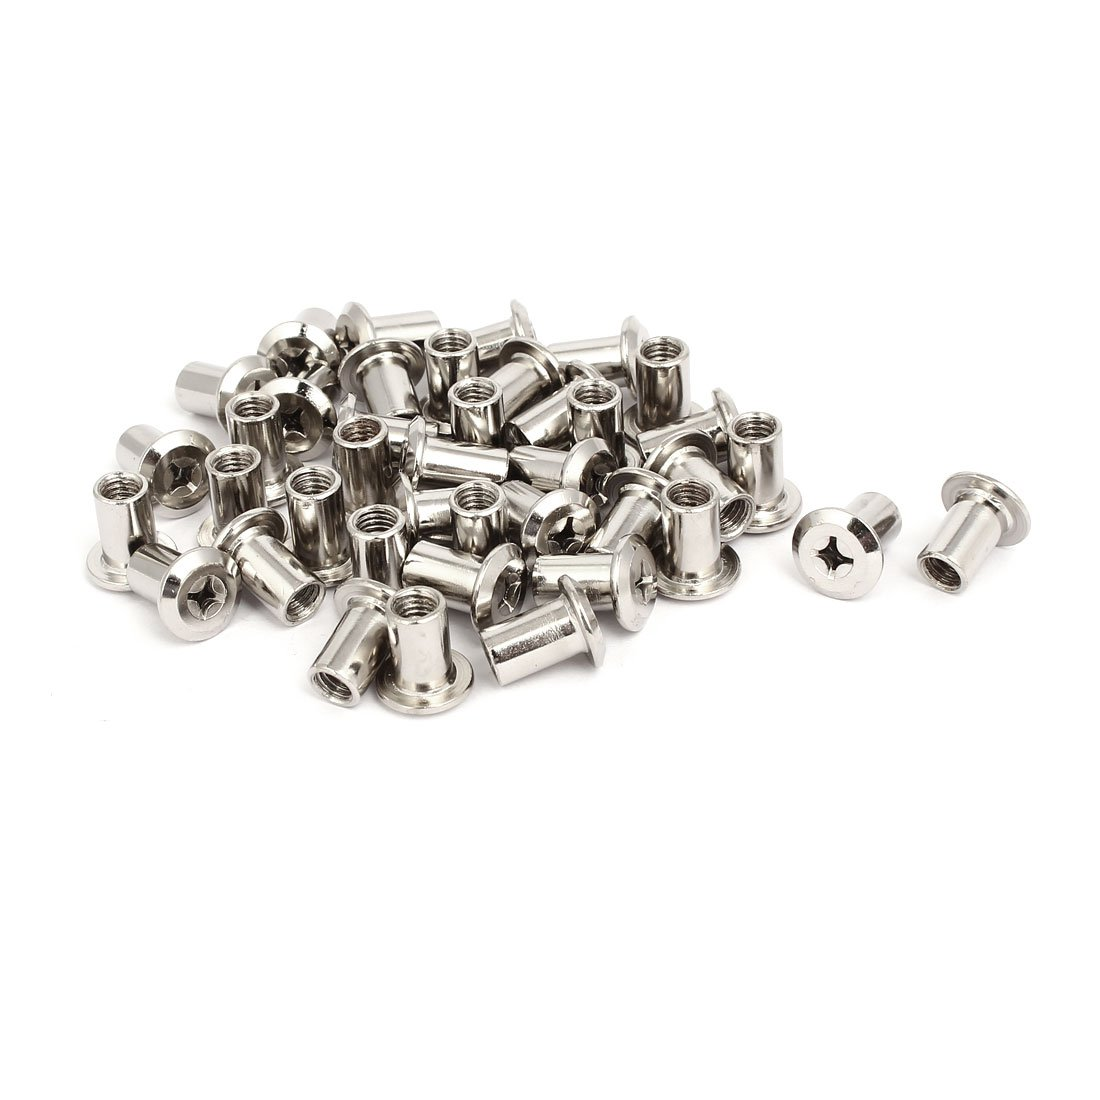 uxcell M6x12mm Female Thread Phillips Head Barrel Nut Furniture Fittings 40pcs